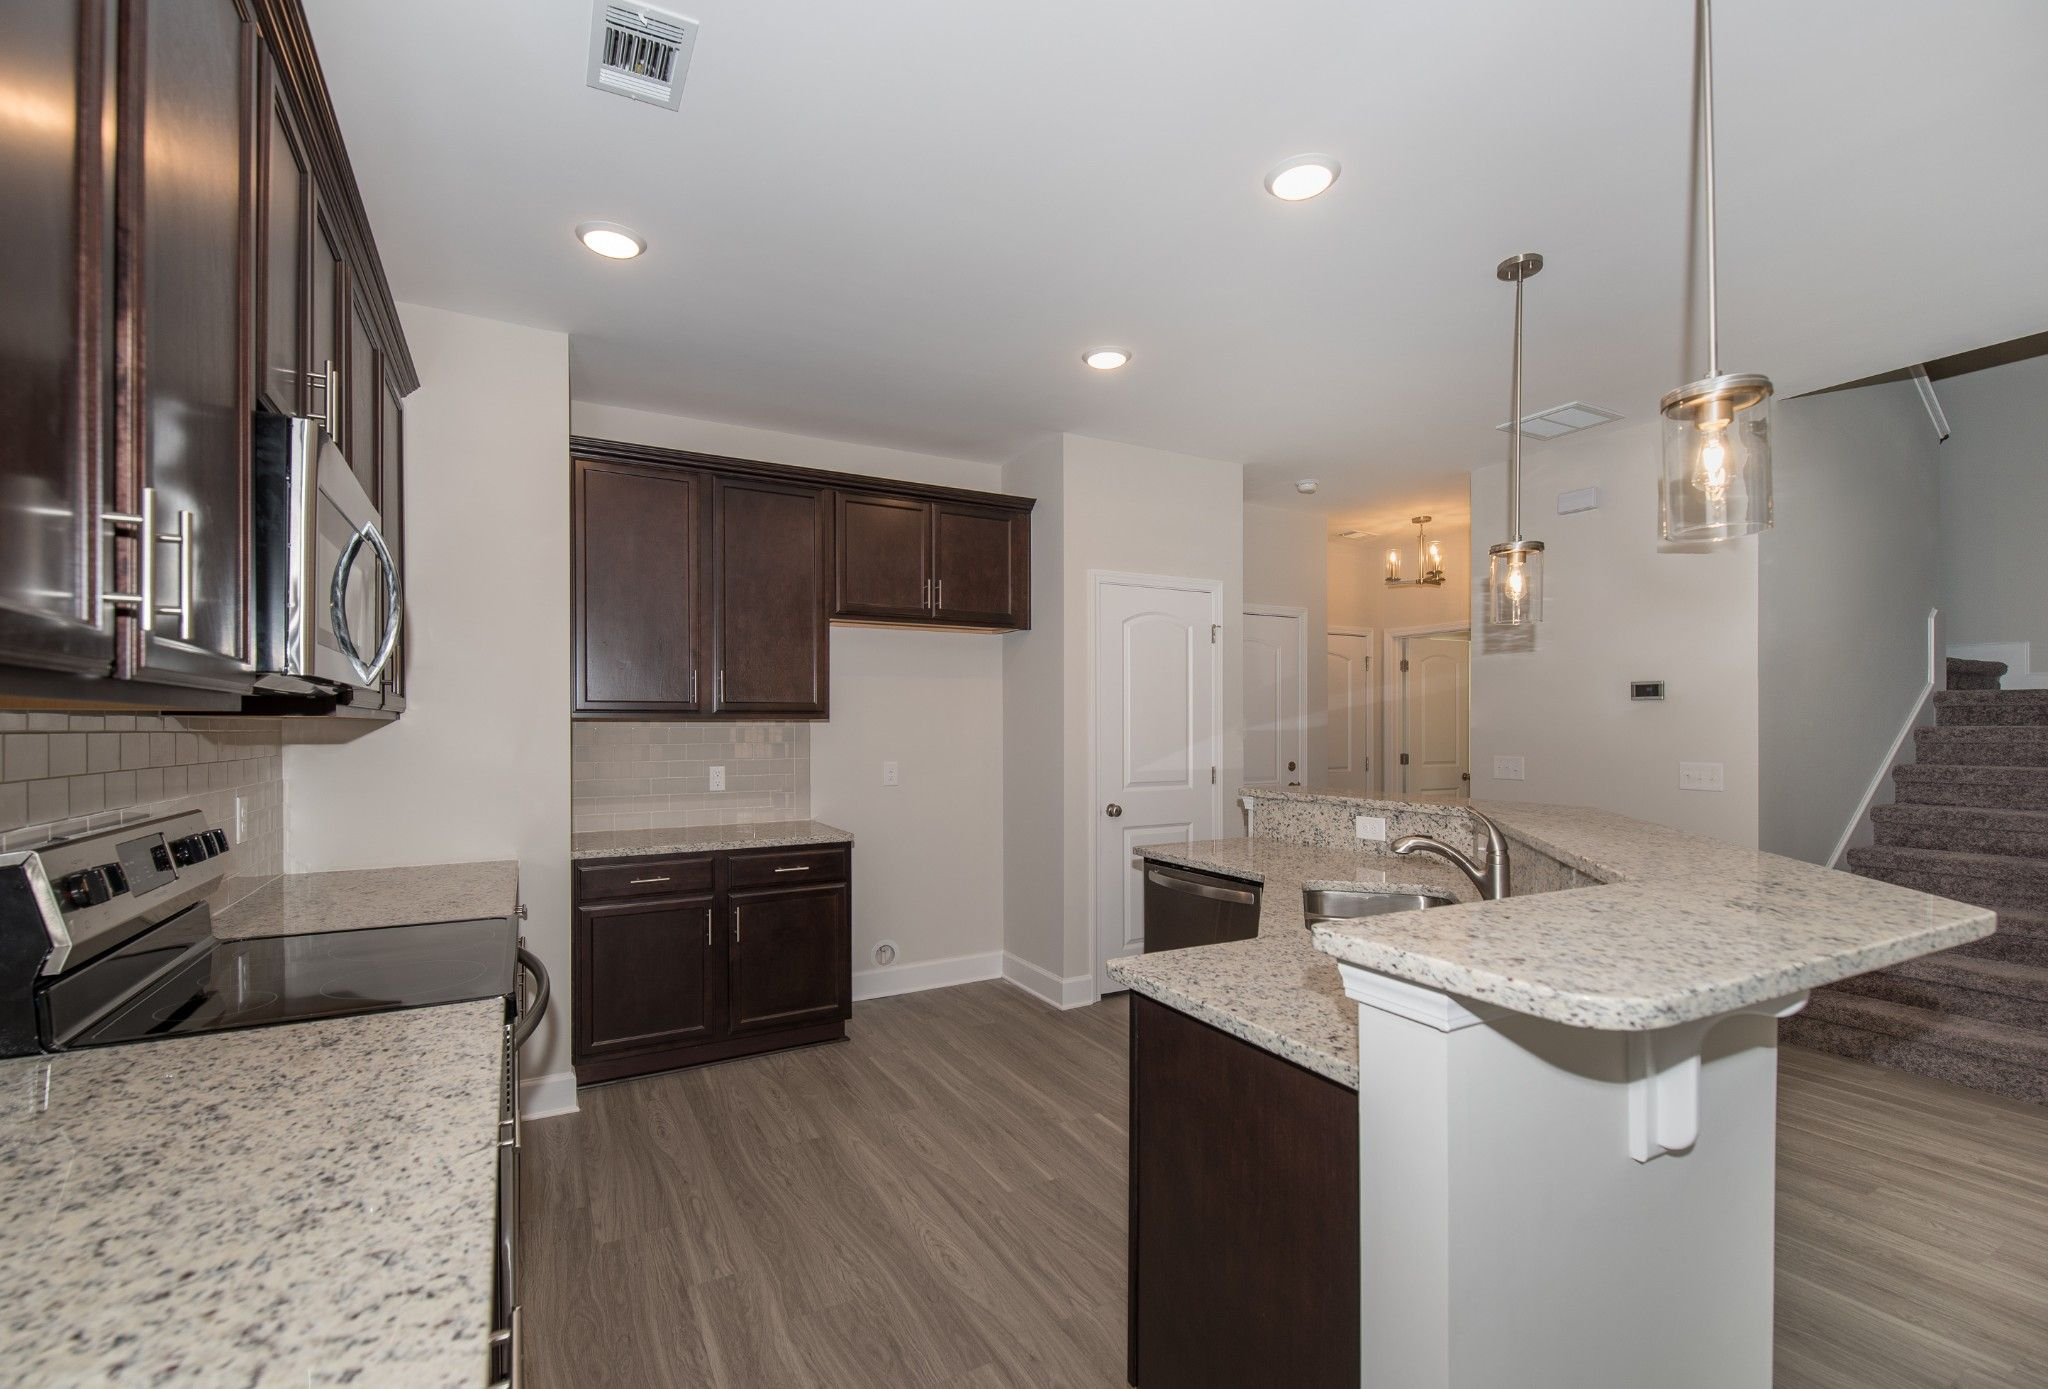 Kitchen featured in the Madison By Ernest Homes in Savannah, GA